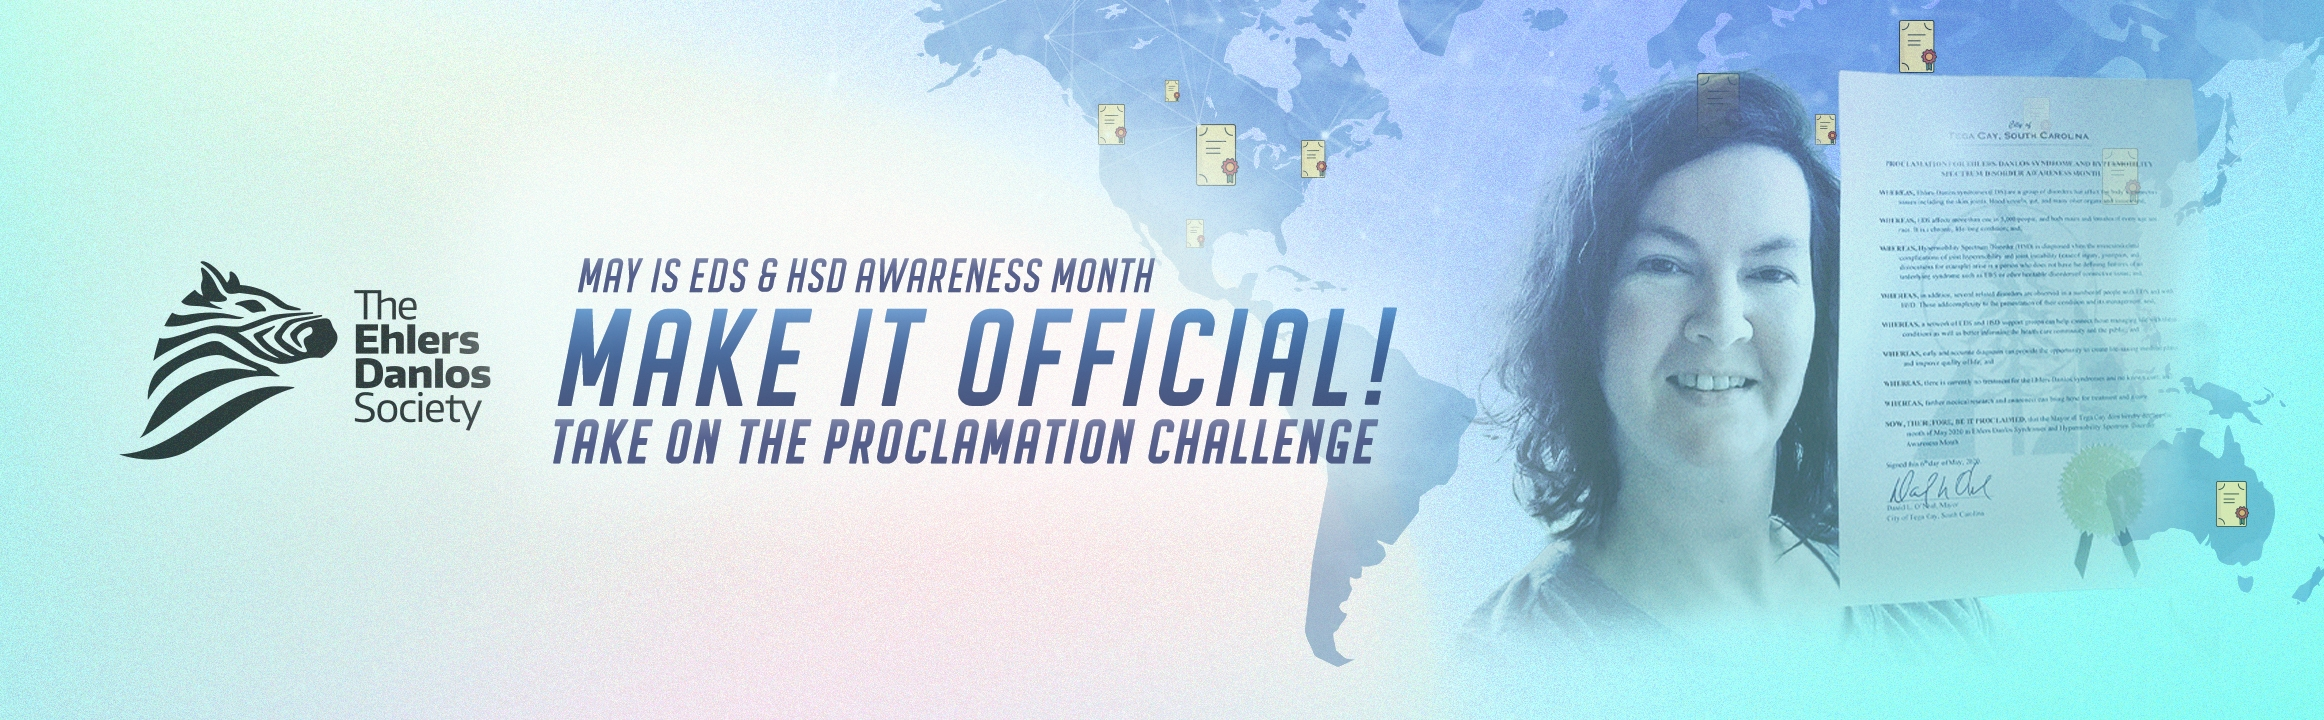 Make it official, take on the Proclamation Challenge.